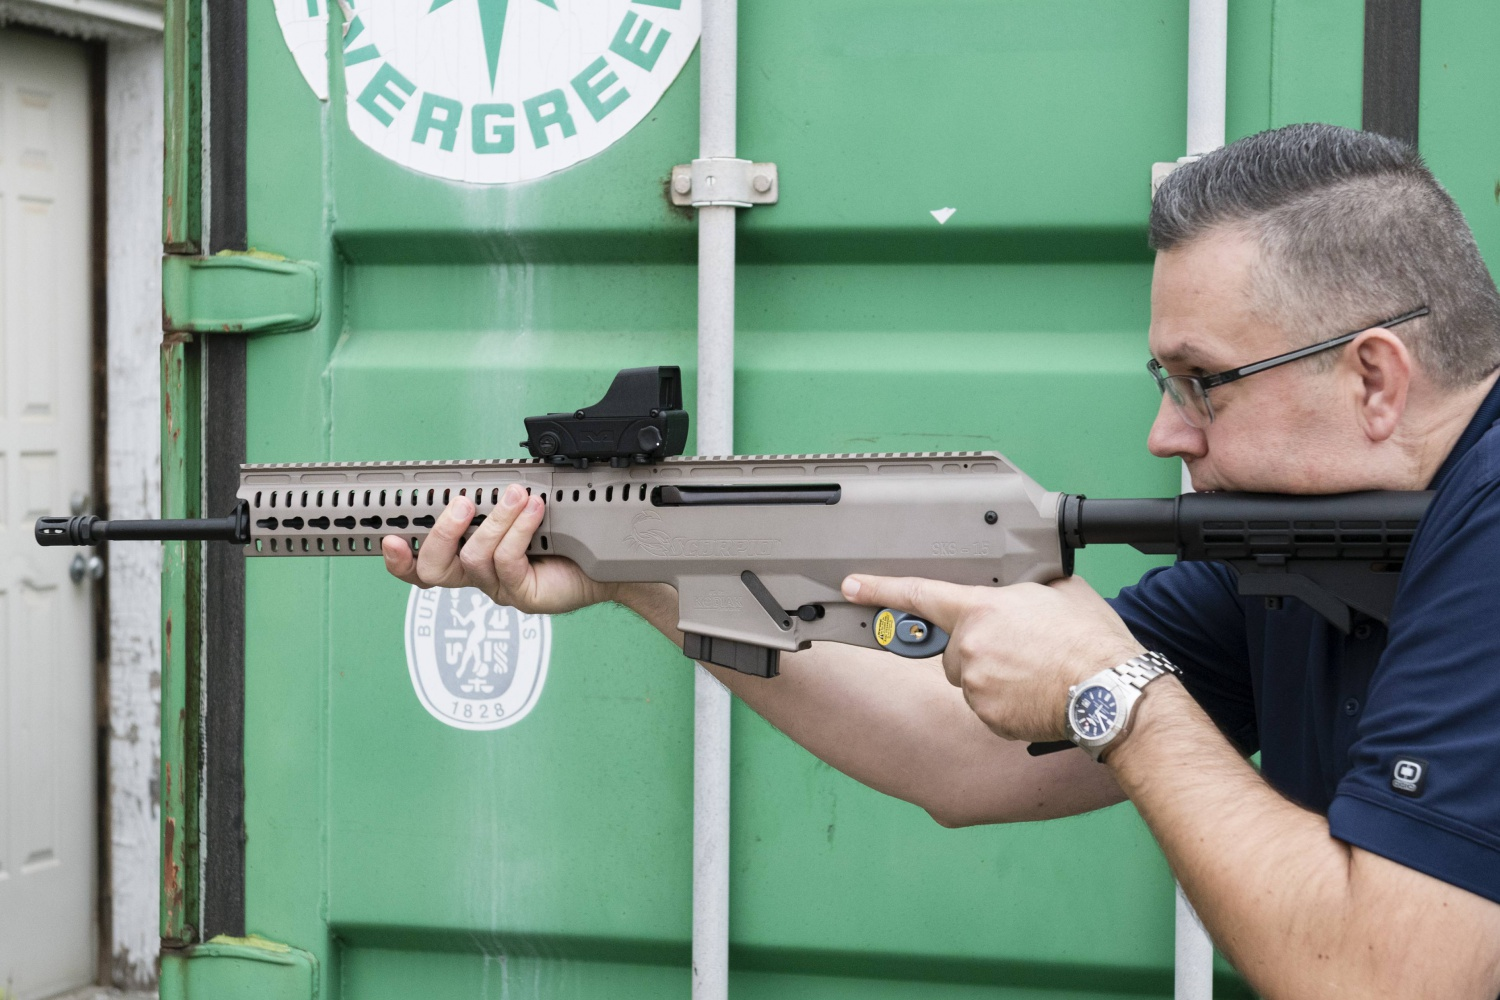 New Scorpio SKS-15 Arrives in Canada -The Firearm Blog